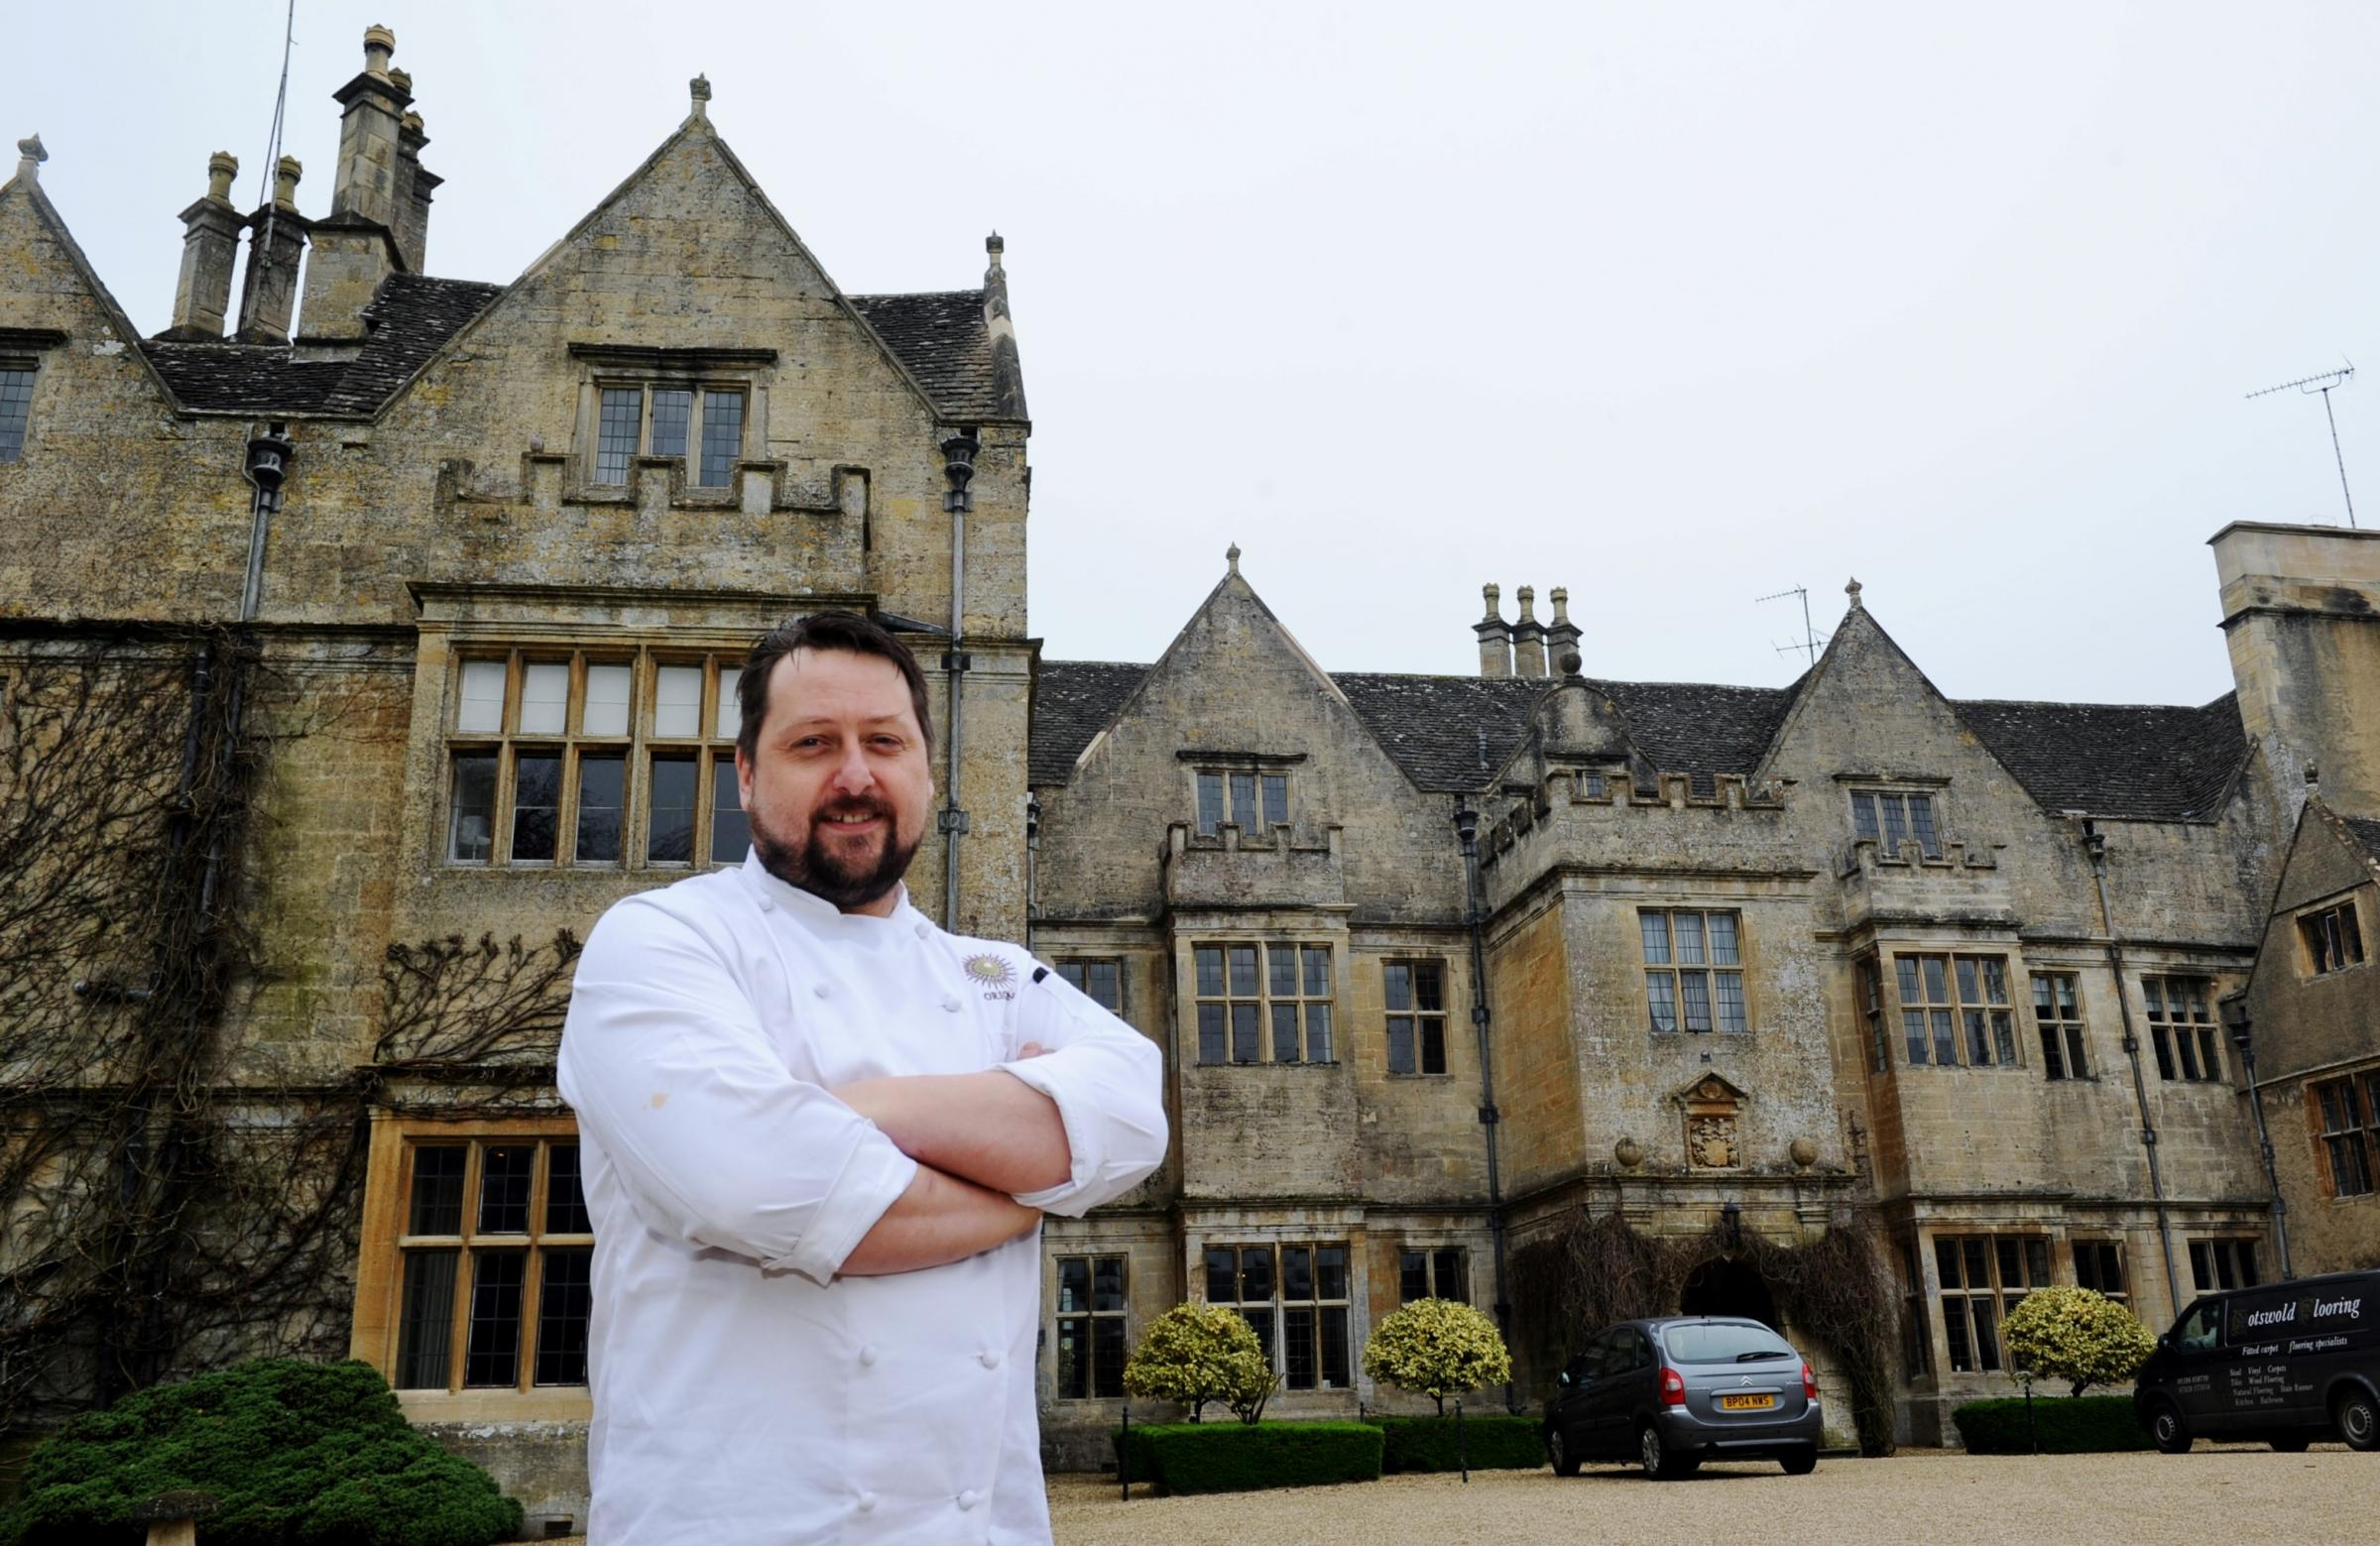 Bibury chef celebrates place in top food guide